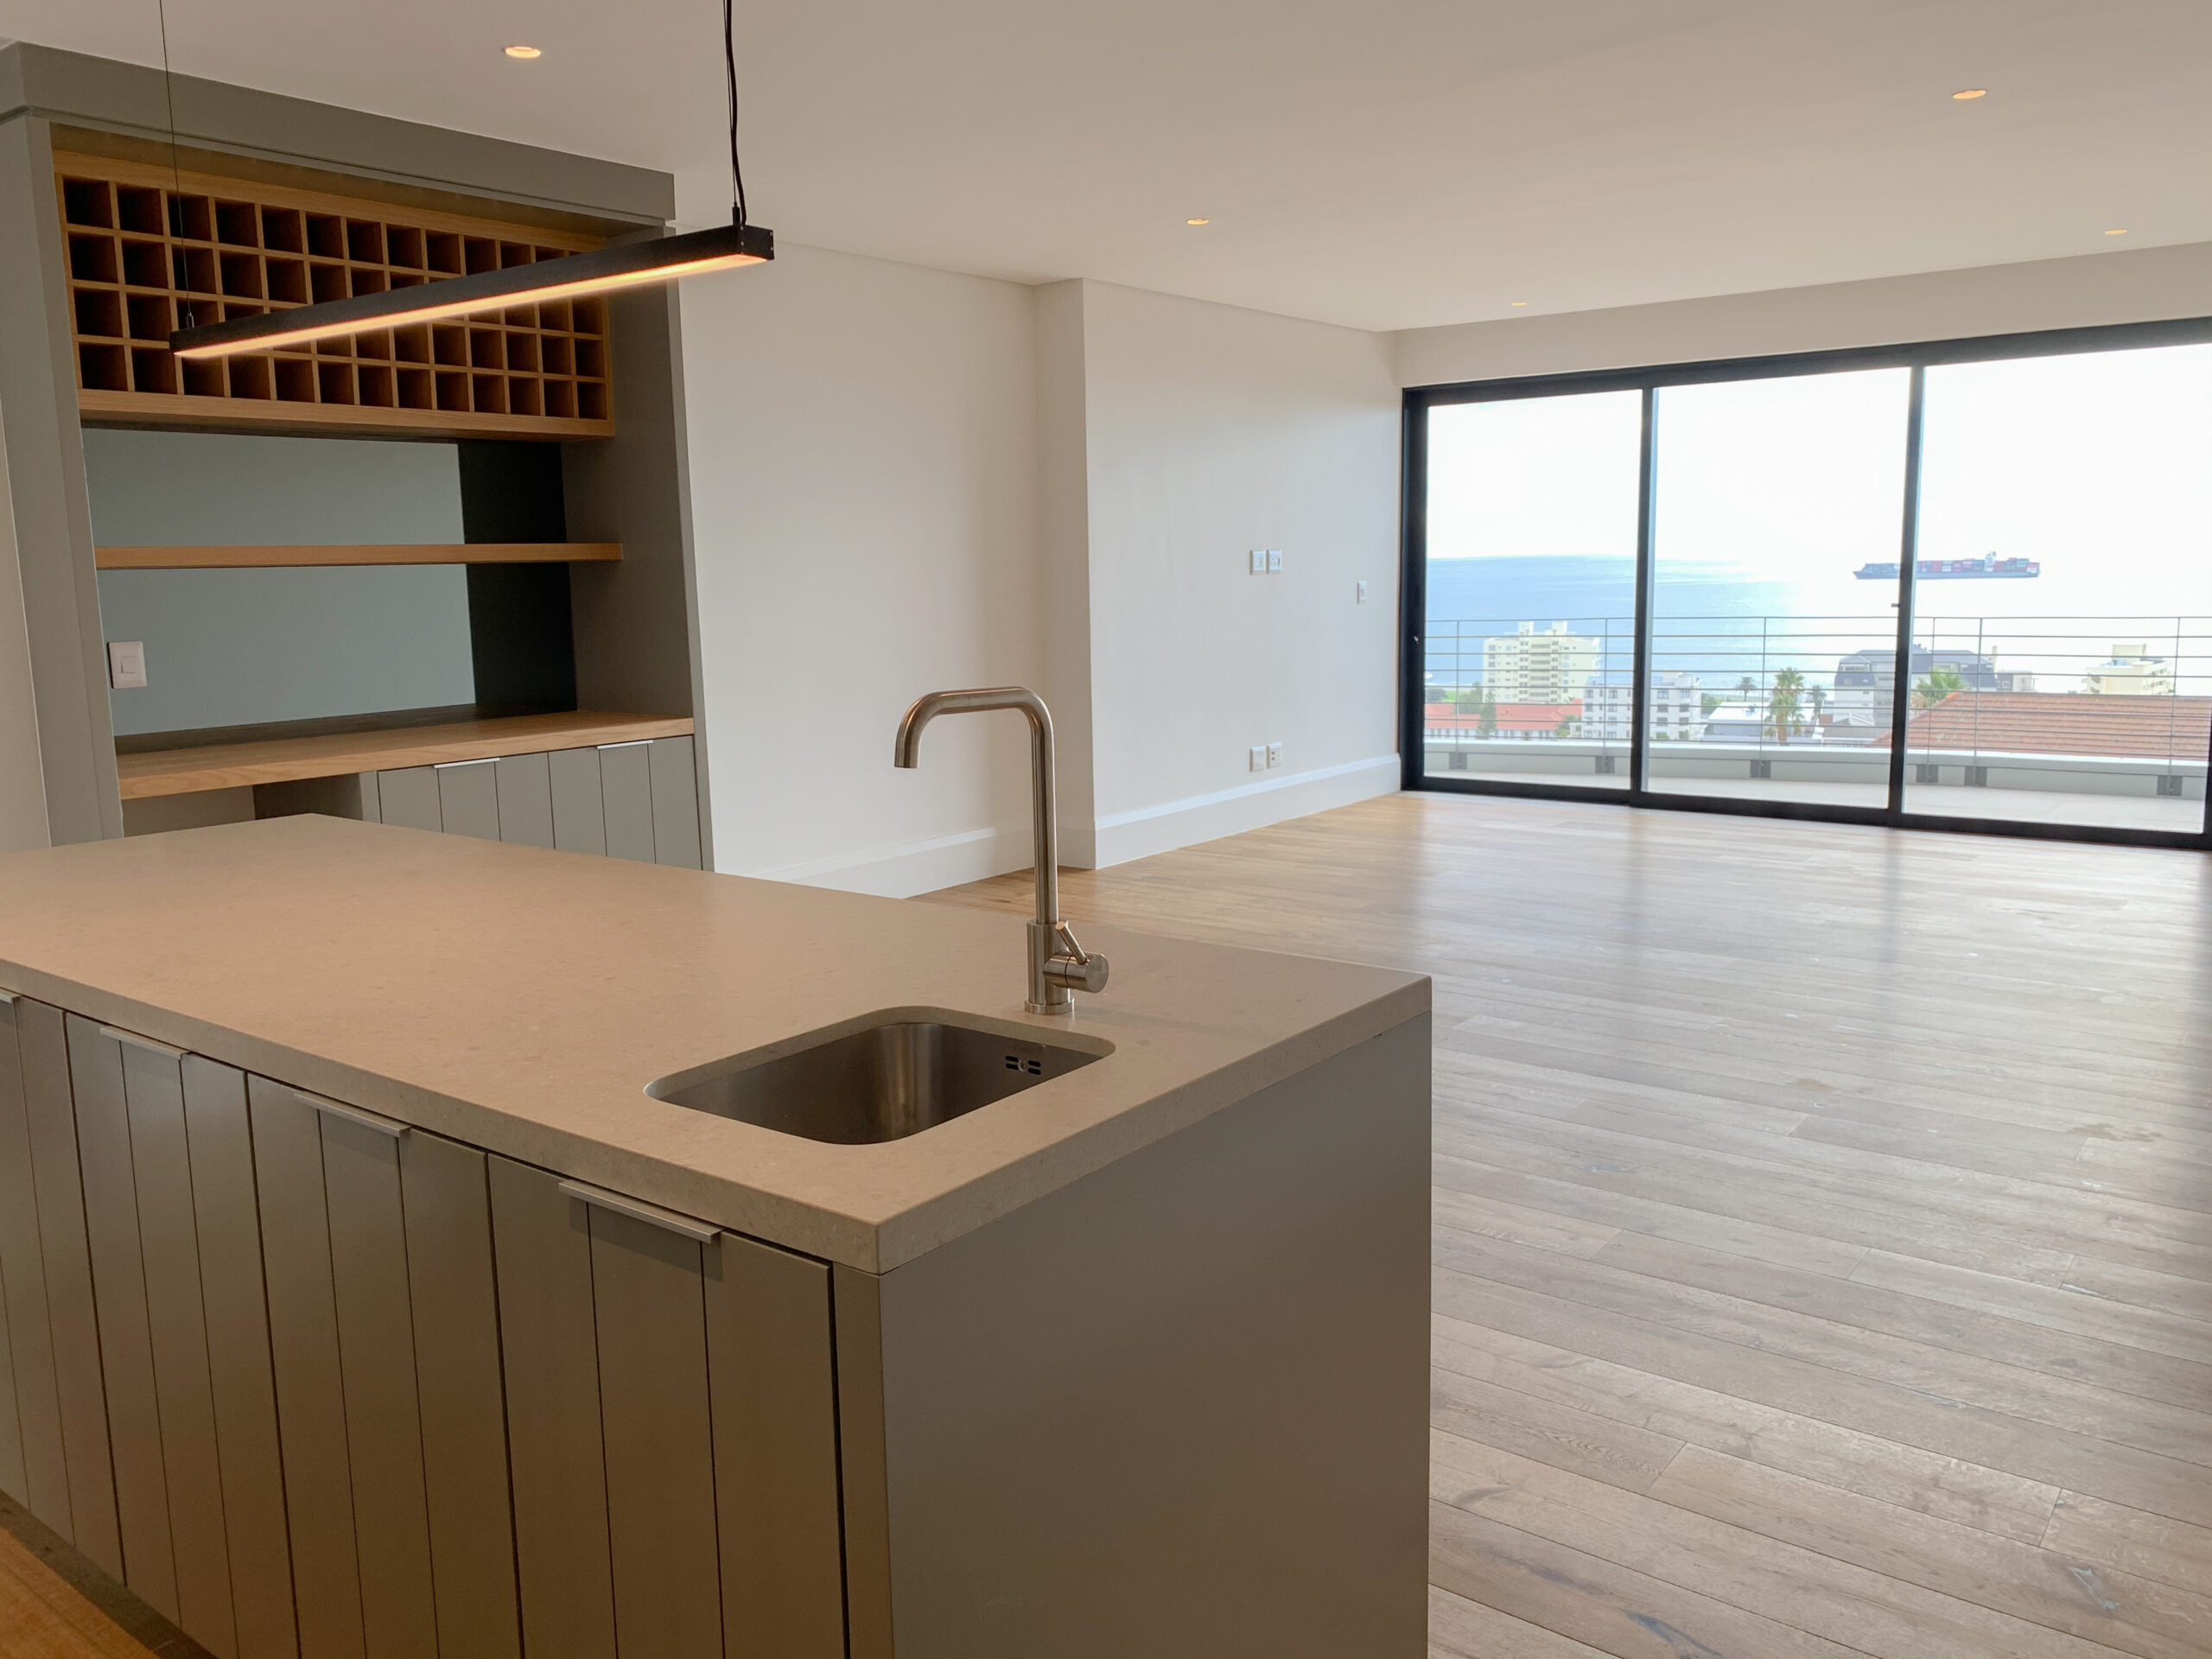 2 Bedroom Apartment in a Luxury New Residence located in Sea Point